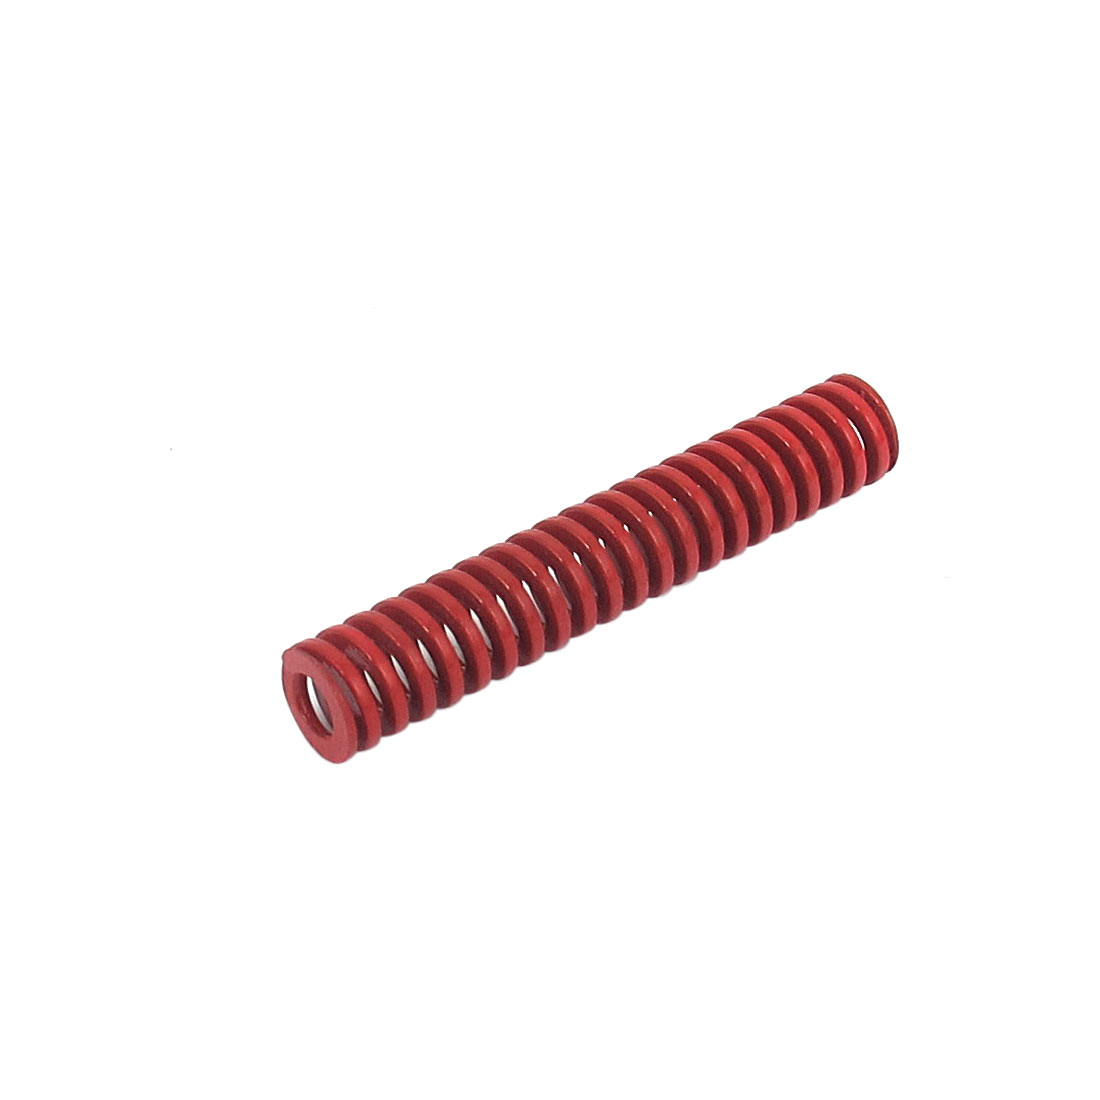 8mm OD 45mm Long Medium Load Spiral Stamping Compression Die Spring Red